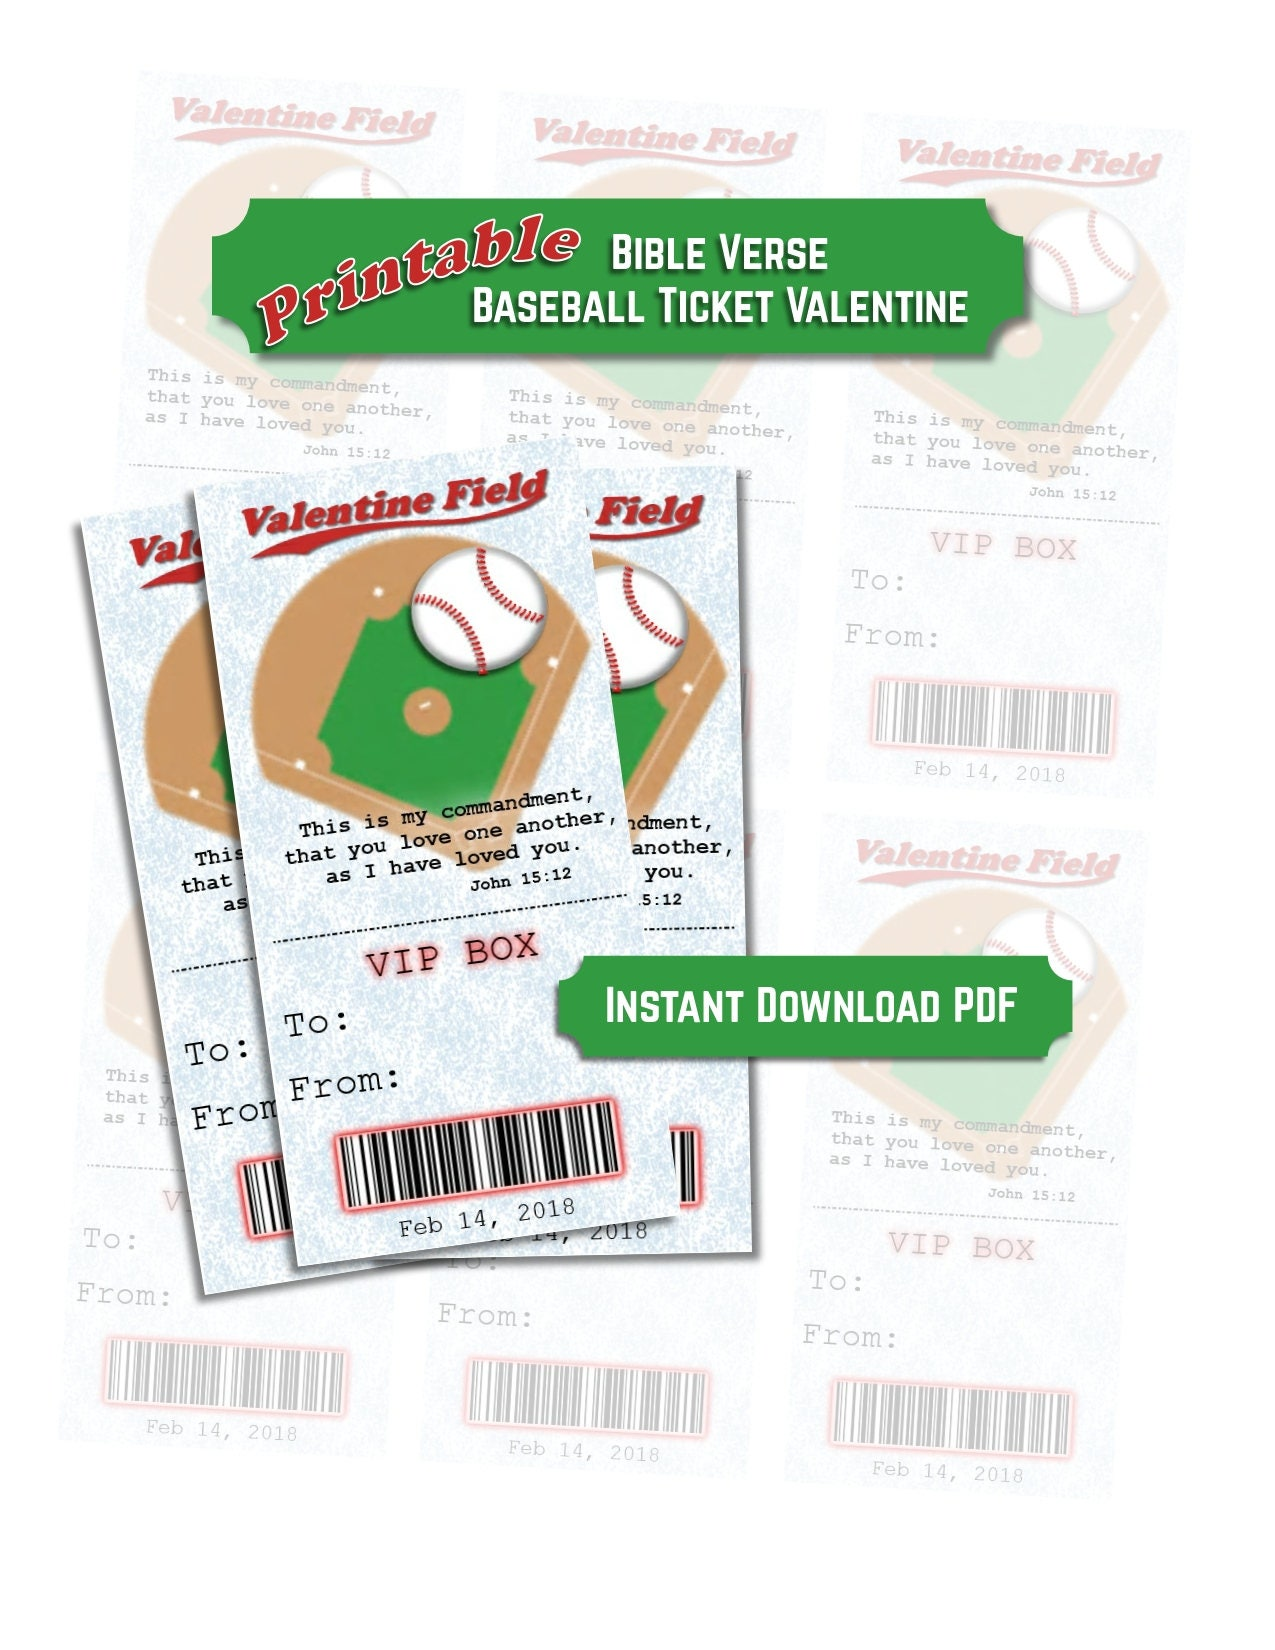 Printable Baseball Ticket Valentines with Bible Verse PDF